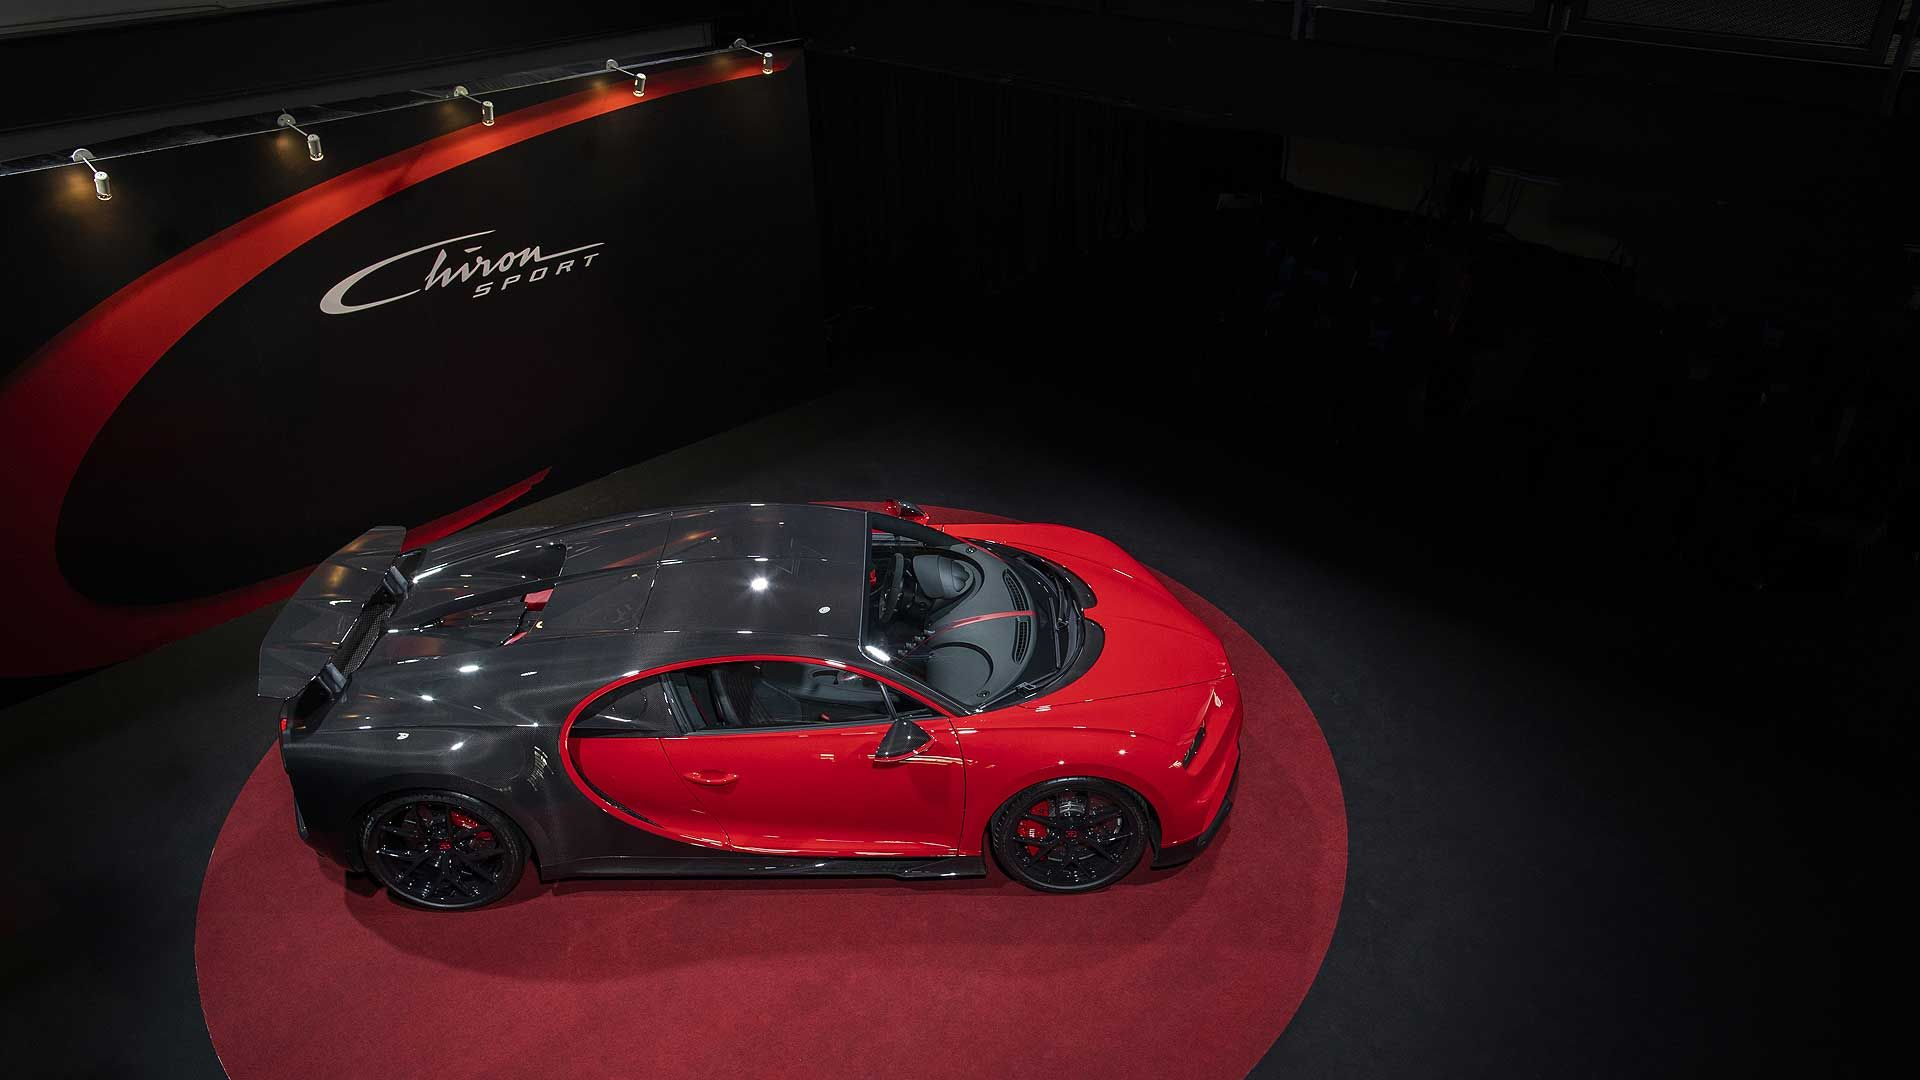 There S A New Bugatti Super Car In Malaysia Malaysia Tatler